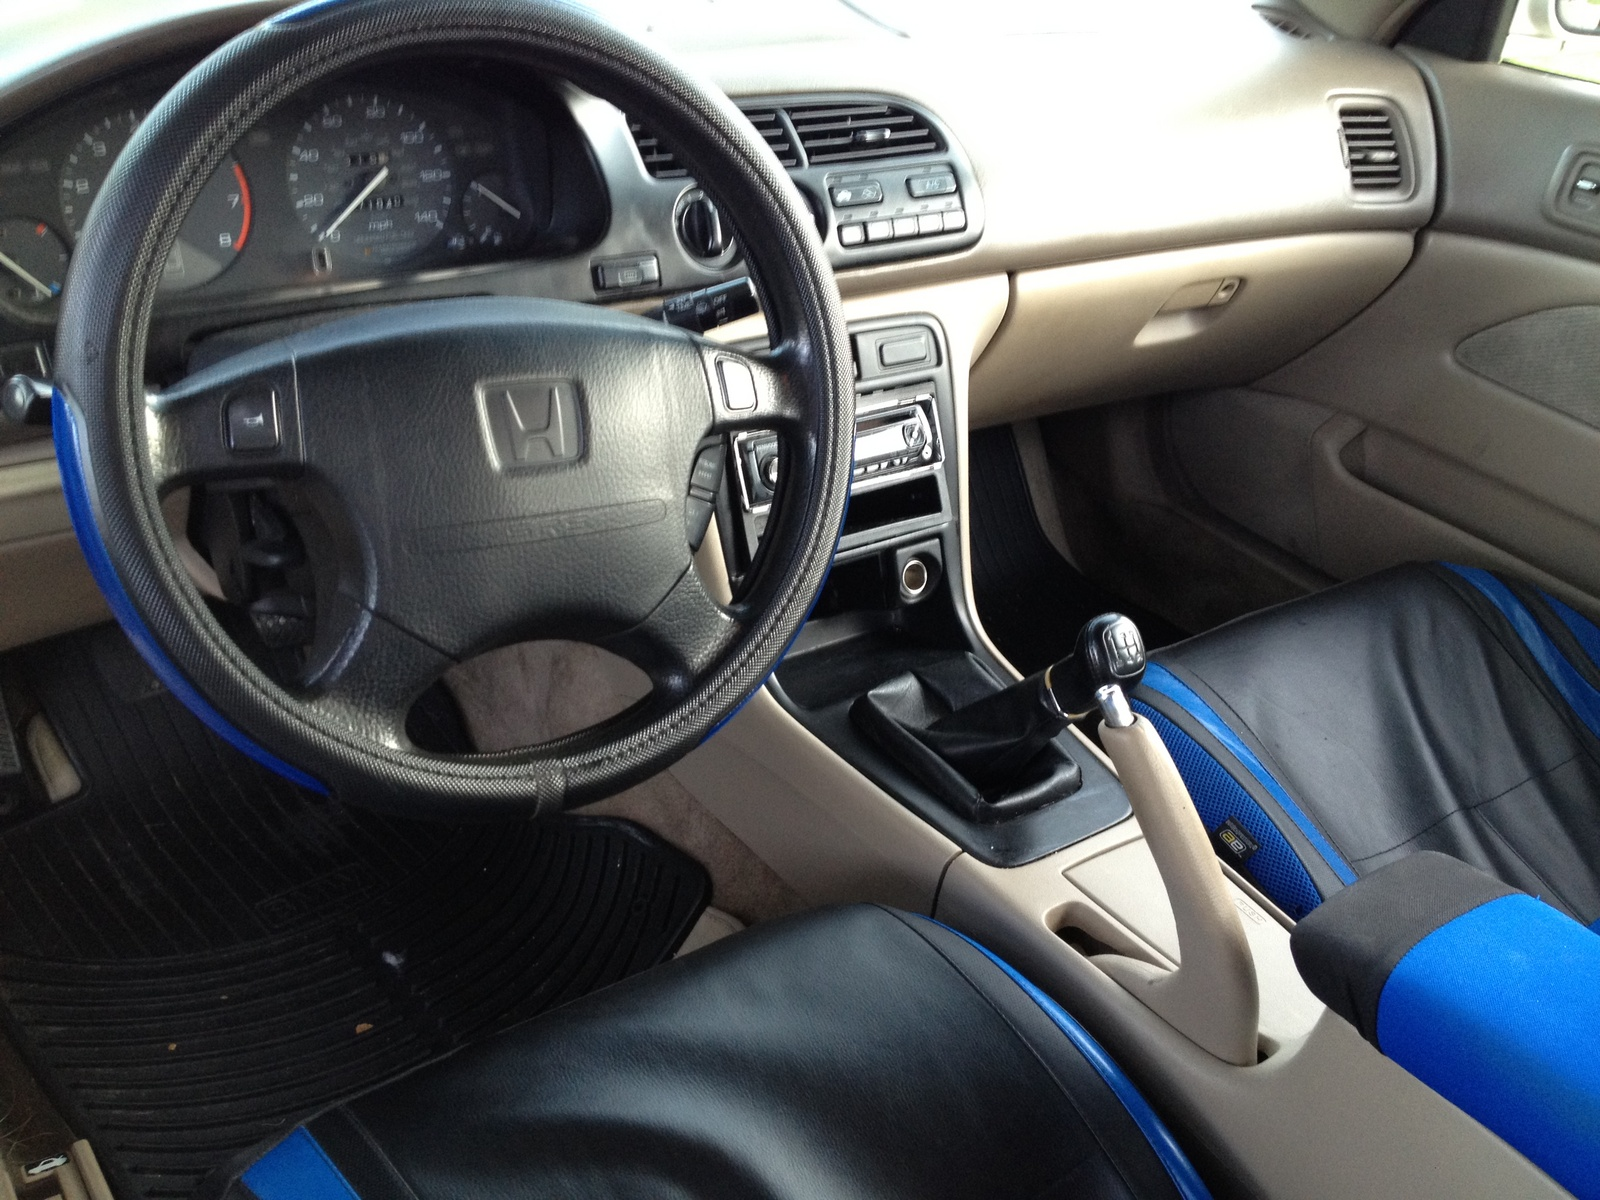 1996 Honda Accord LX Coupe picture, interior